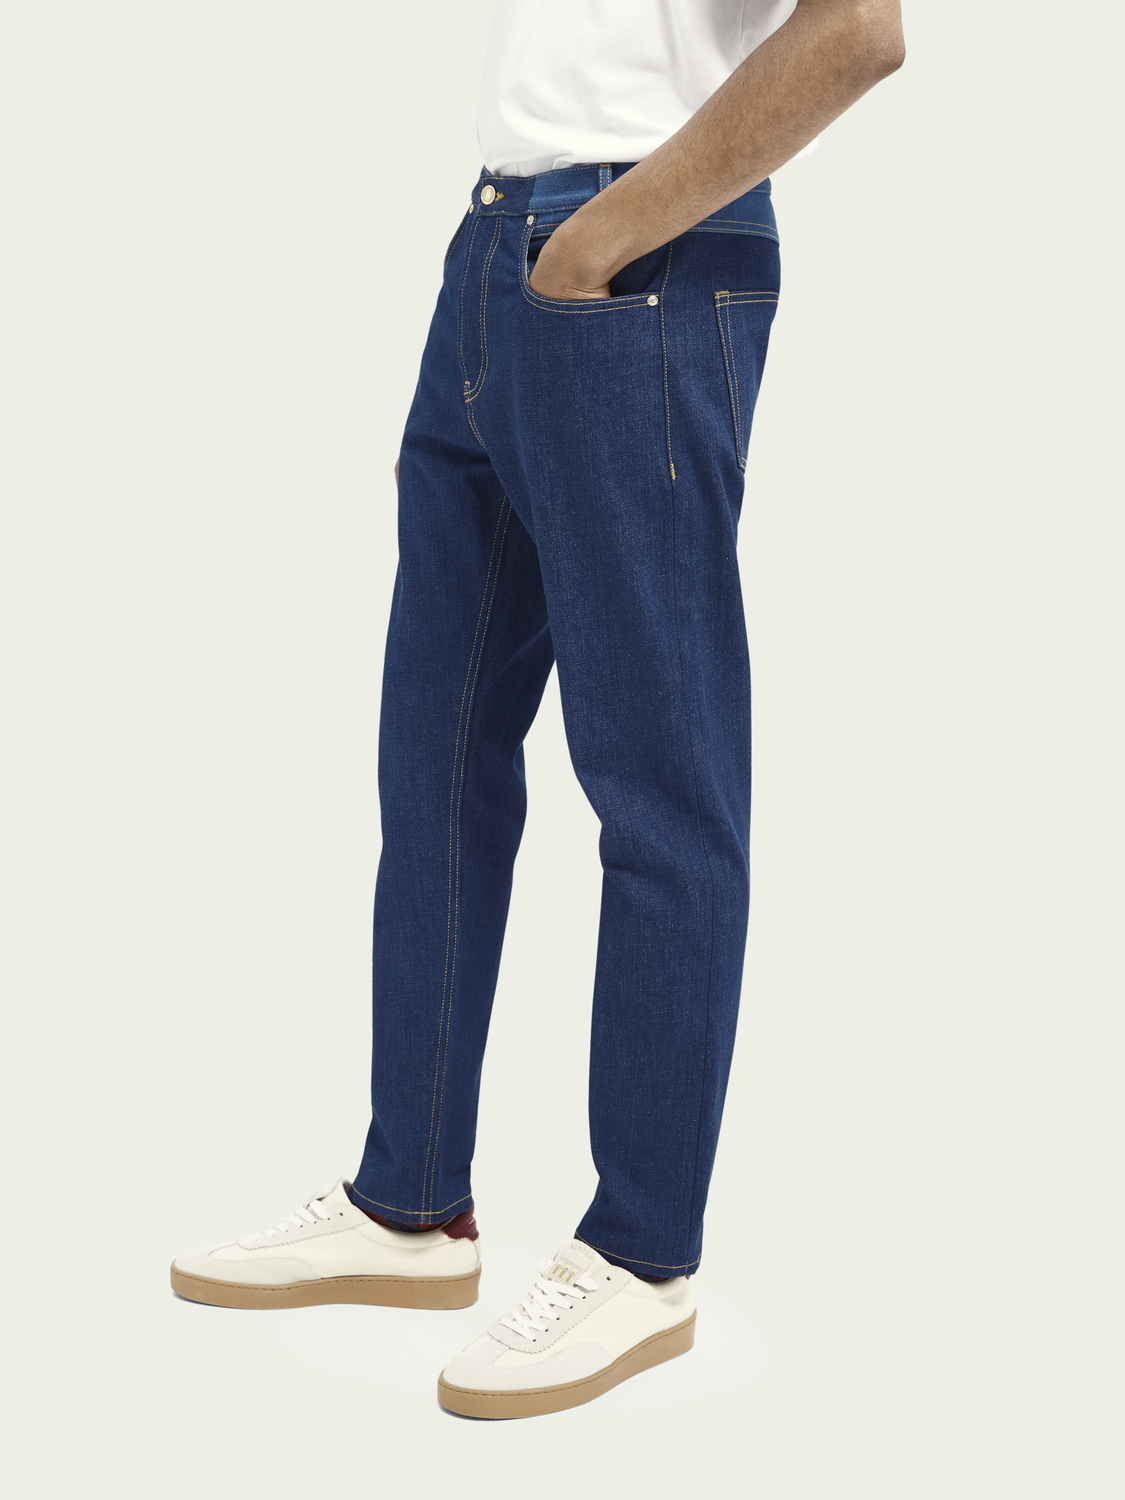 Men The Norm Plus straight high-rise jeans - Dress For Adventure